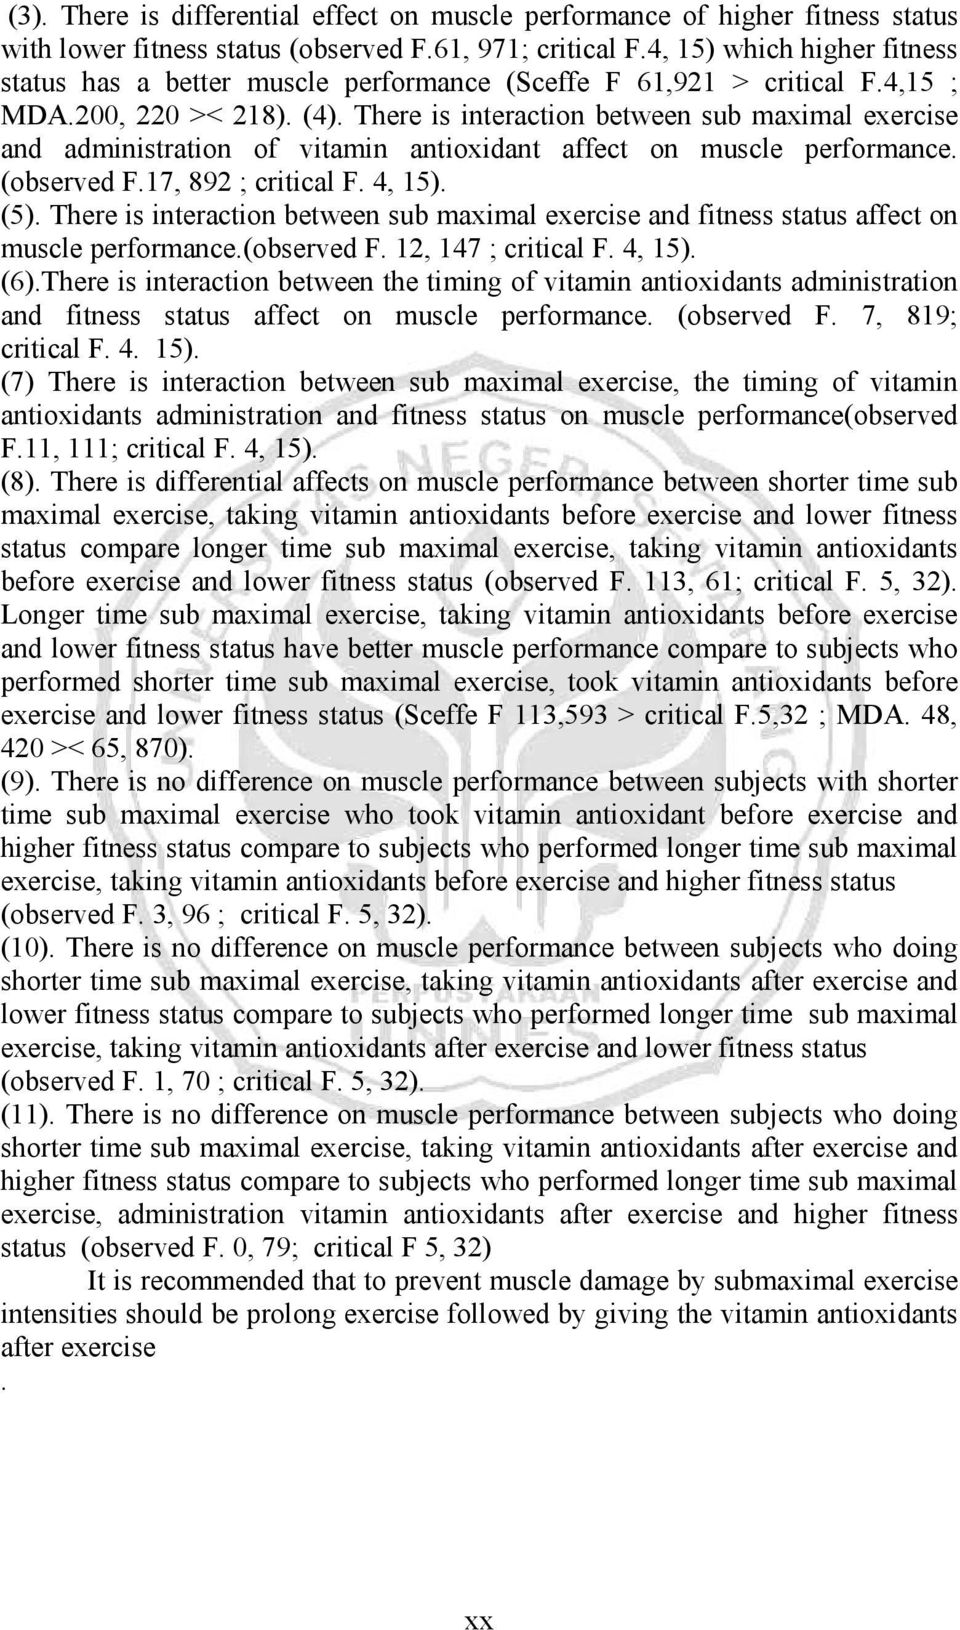 There is interaction between sub maximal exercise and administration of vitamin antioxidant affect on muscle performance. (observed F.17, 892 ; critical F. 4, 15). (5).